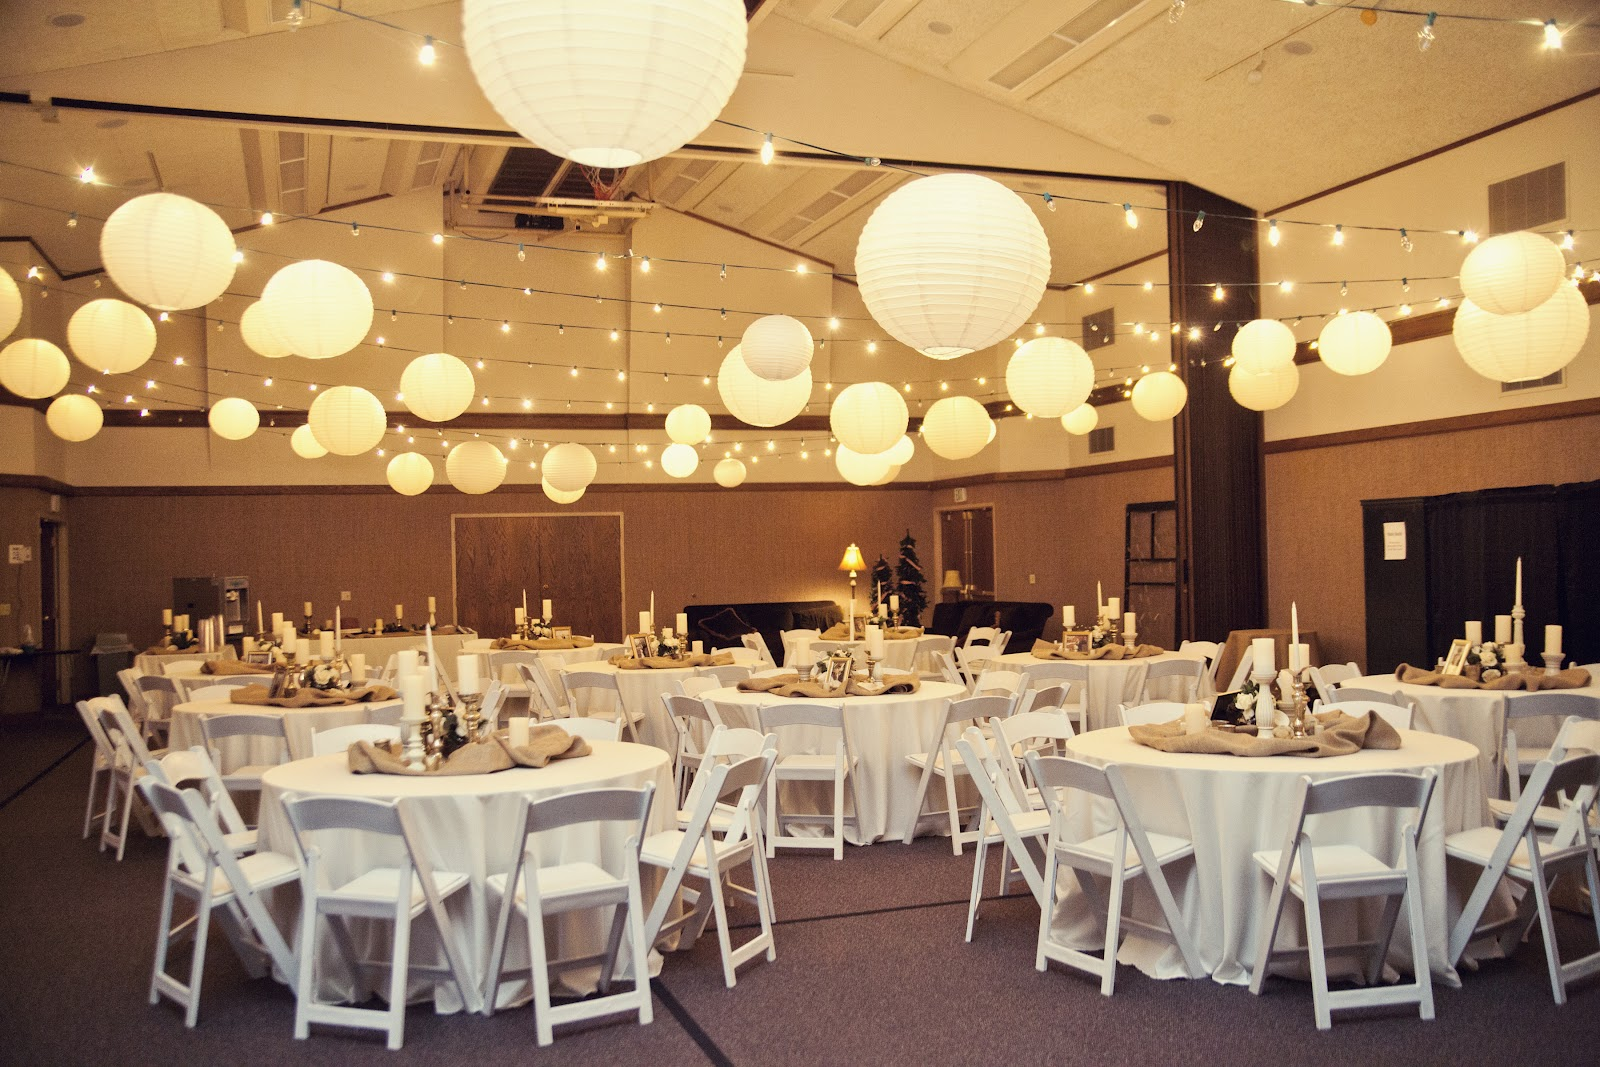 Beehive art salon wedding for Decoration salon simple